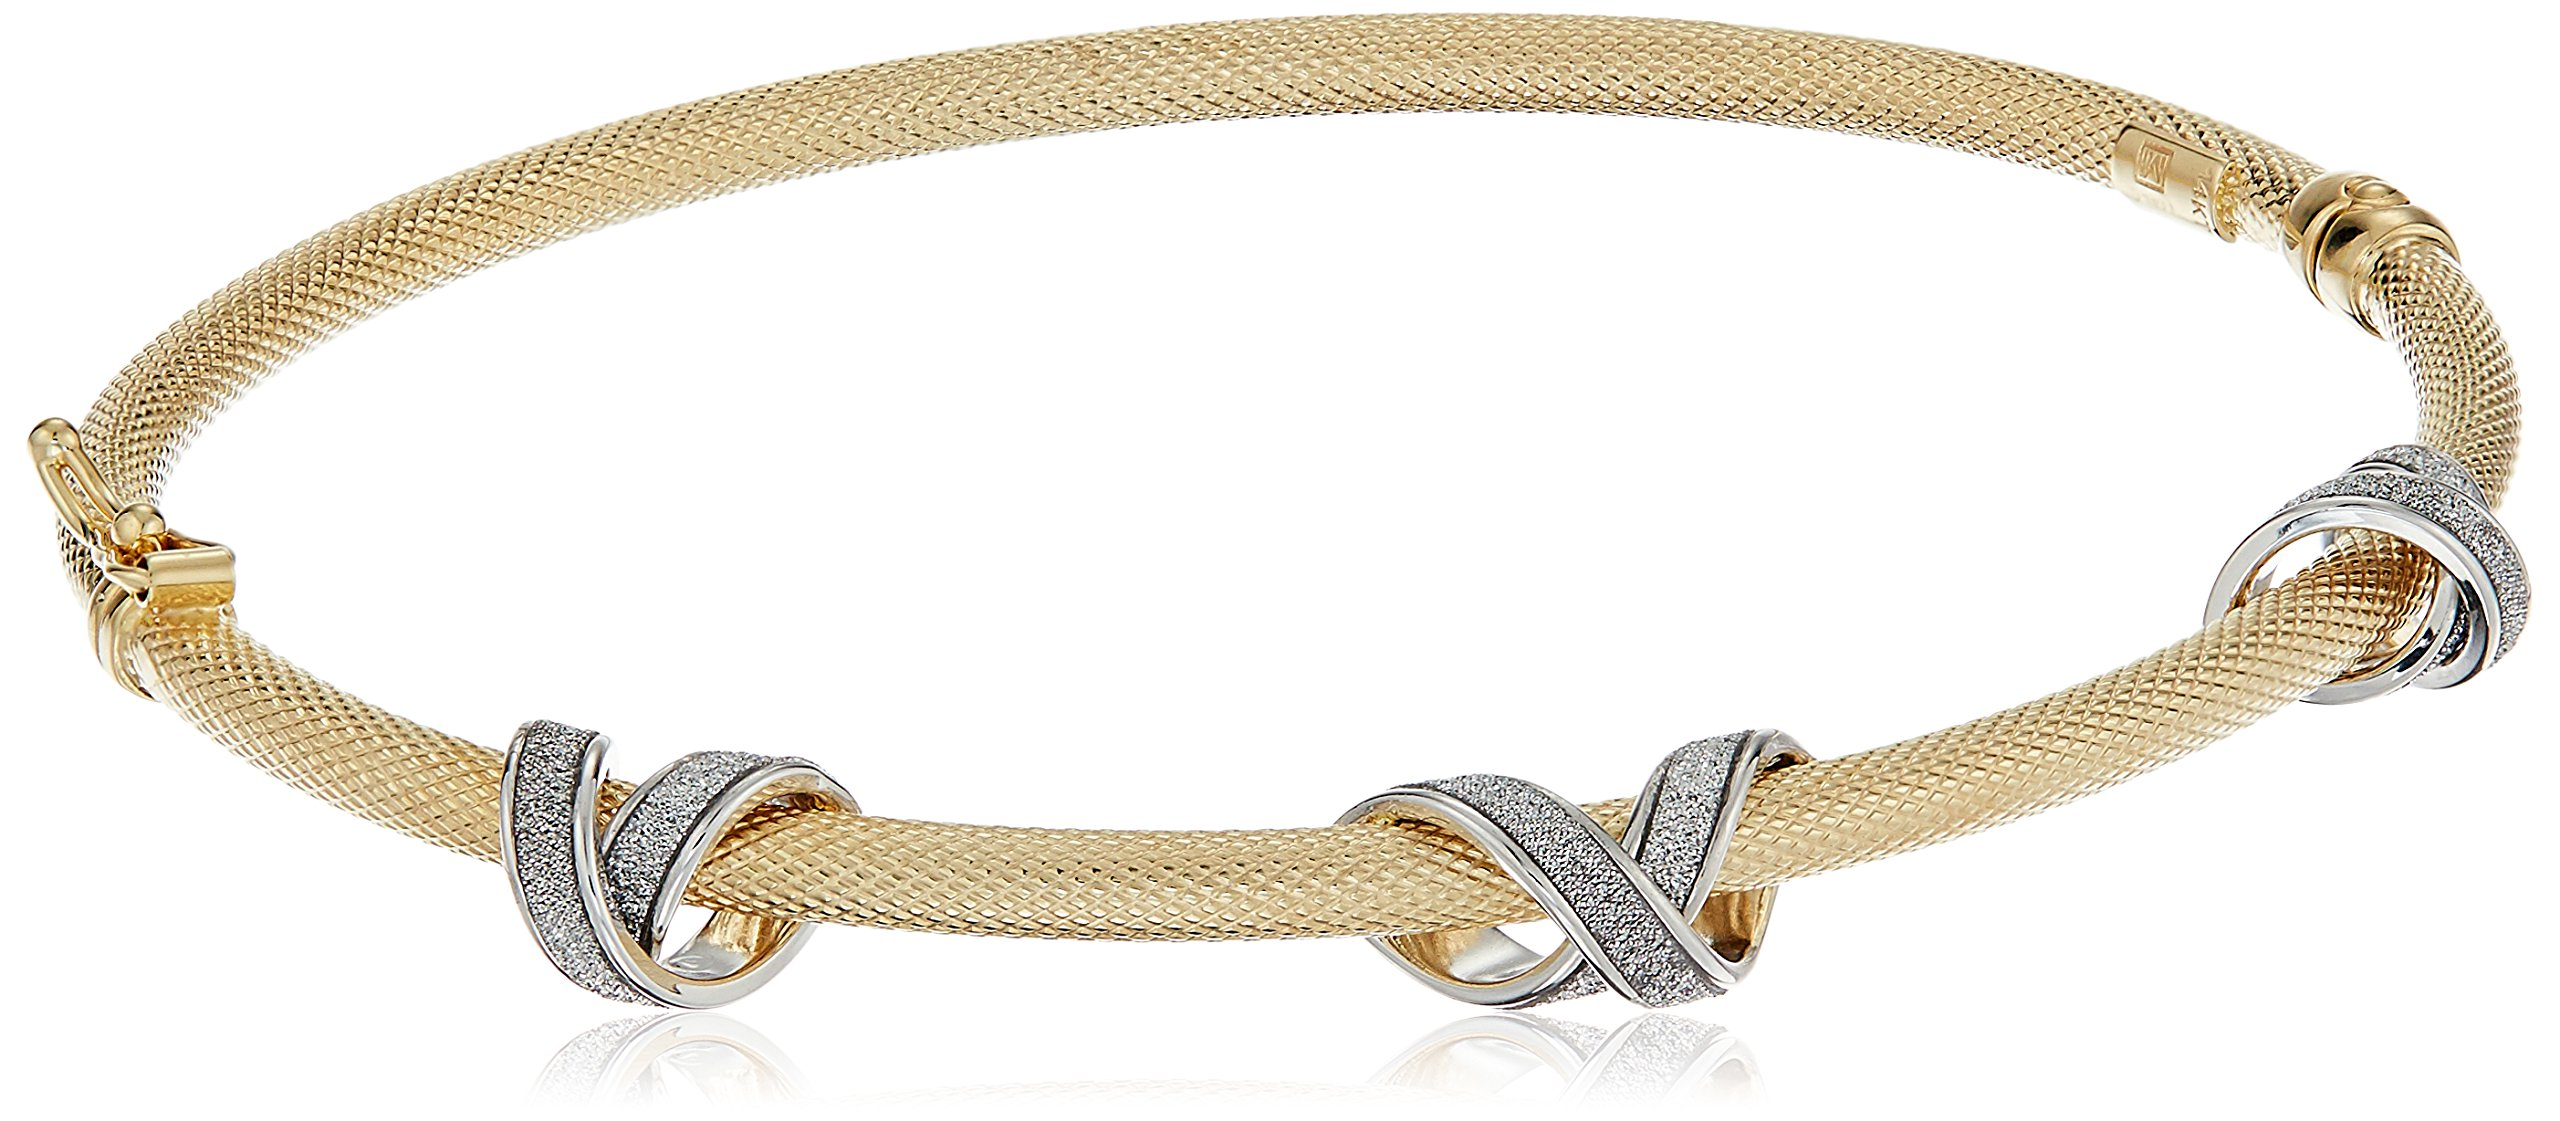 14k Two-Tone Gold Italian Textured Bangle with Triple Glitter ''X'' Design Bangle Bracelet